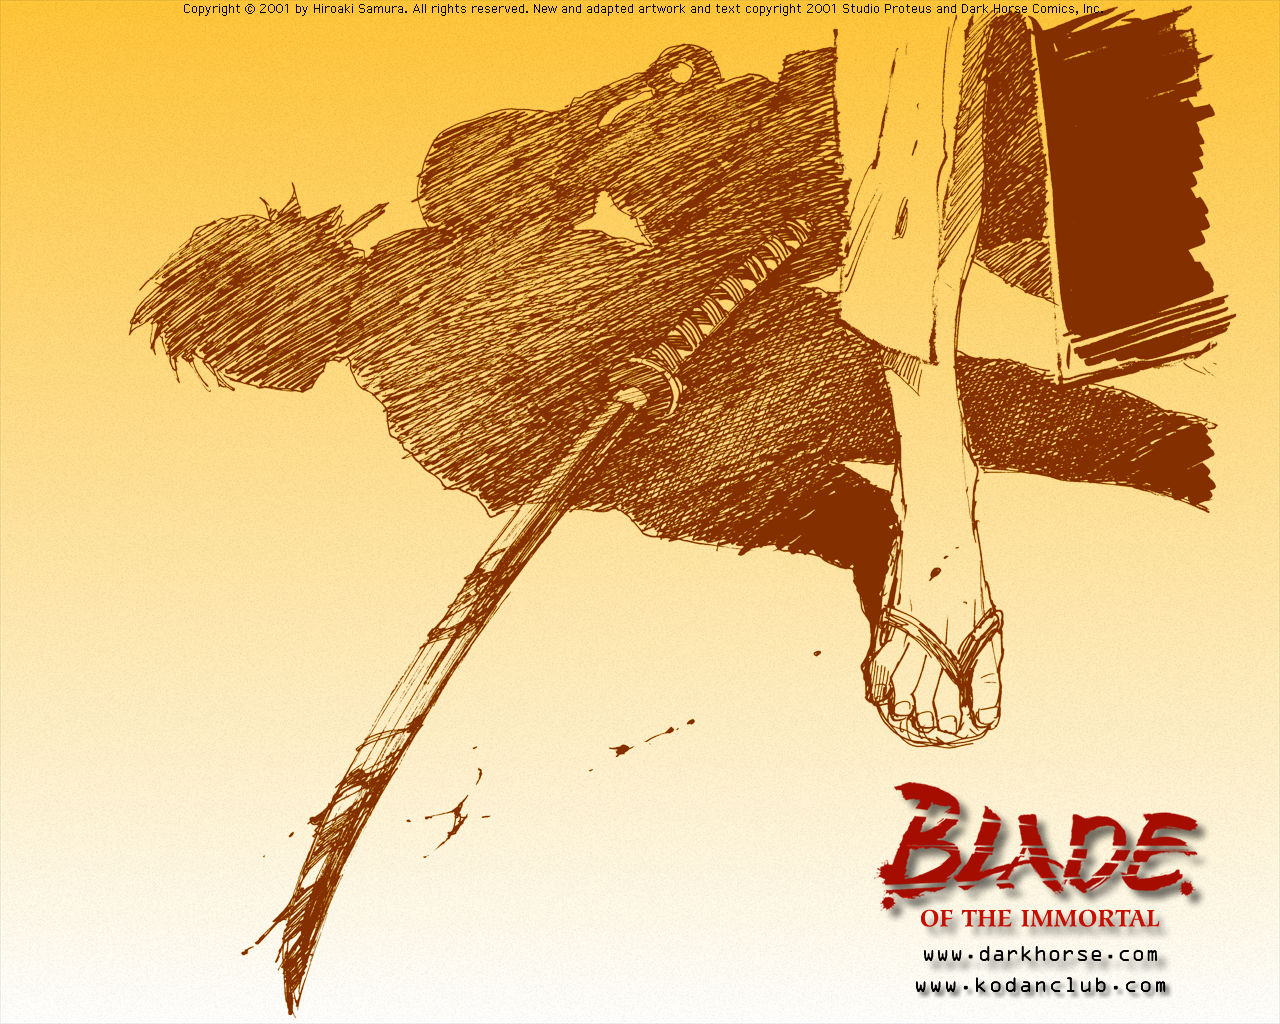 Blade Of The Immortal Desktops Dark Horse Comics